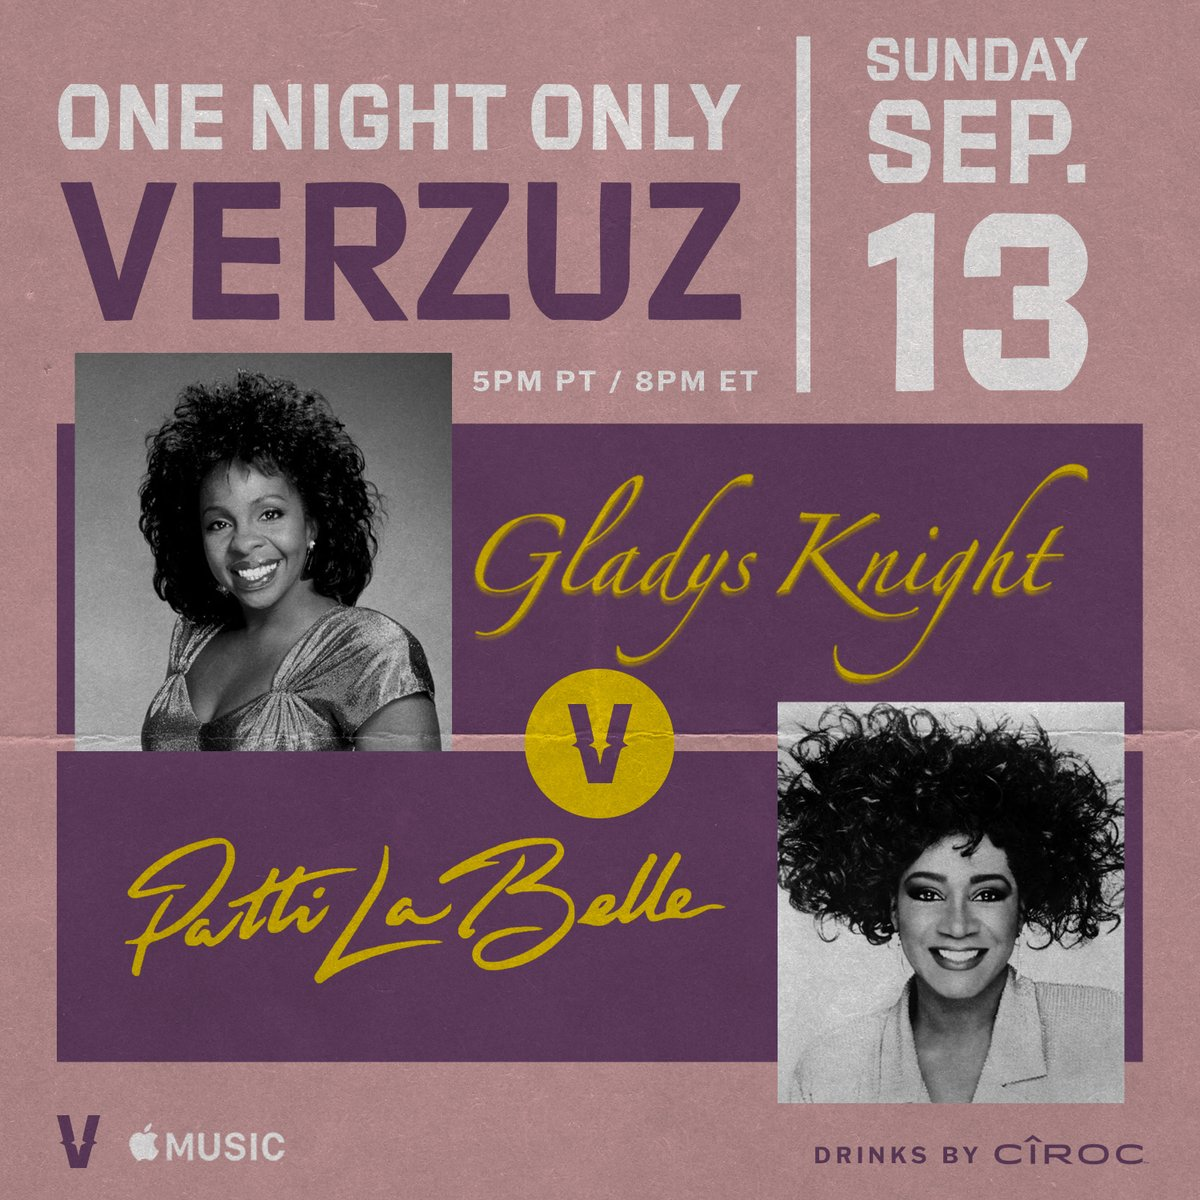 The Master Class we've ALL been waiting for!  @MsGladysKnight vs. @MsPattiPatti 🔥 This Sunday at 5PM PT/8PM ET.  Y'all gotta get dressed up in ya Sunday's best for this classic affair.  Watch it on our IG or in HD on @AppleMusic. Drinks by @Ciroc.